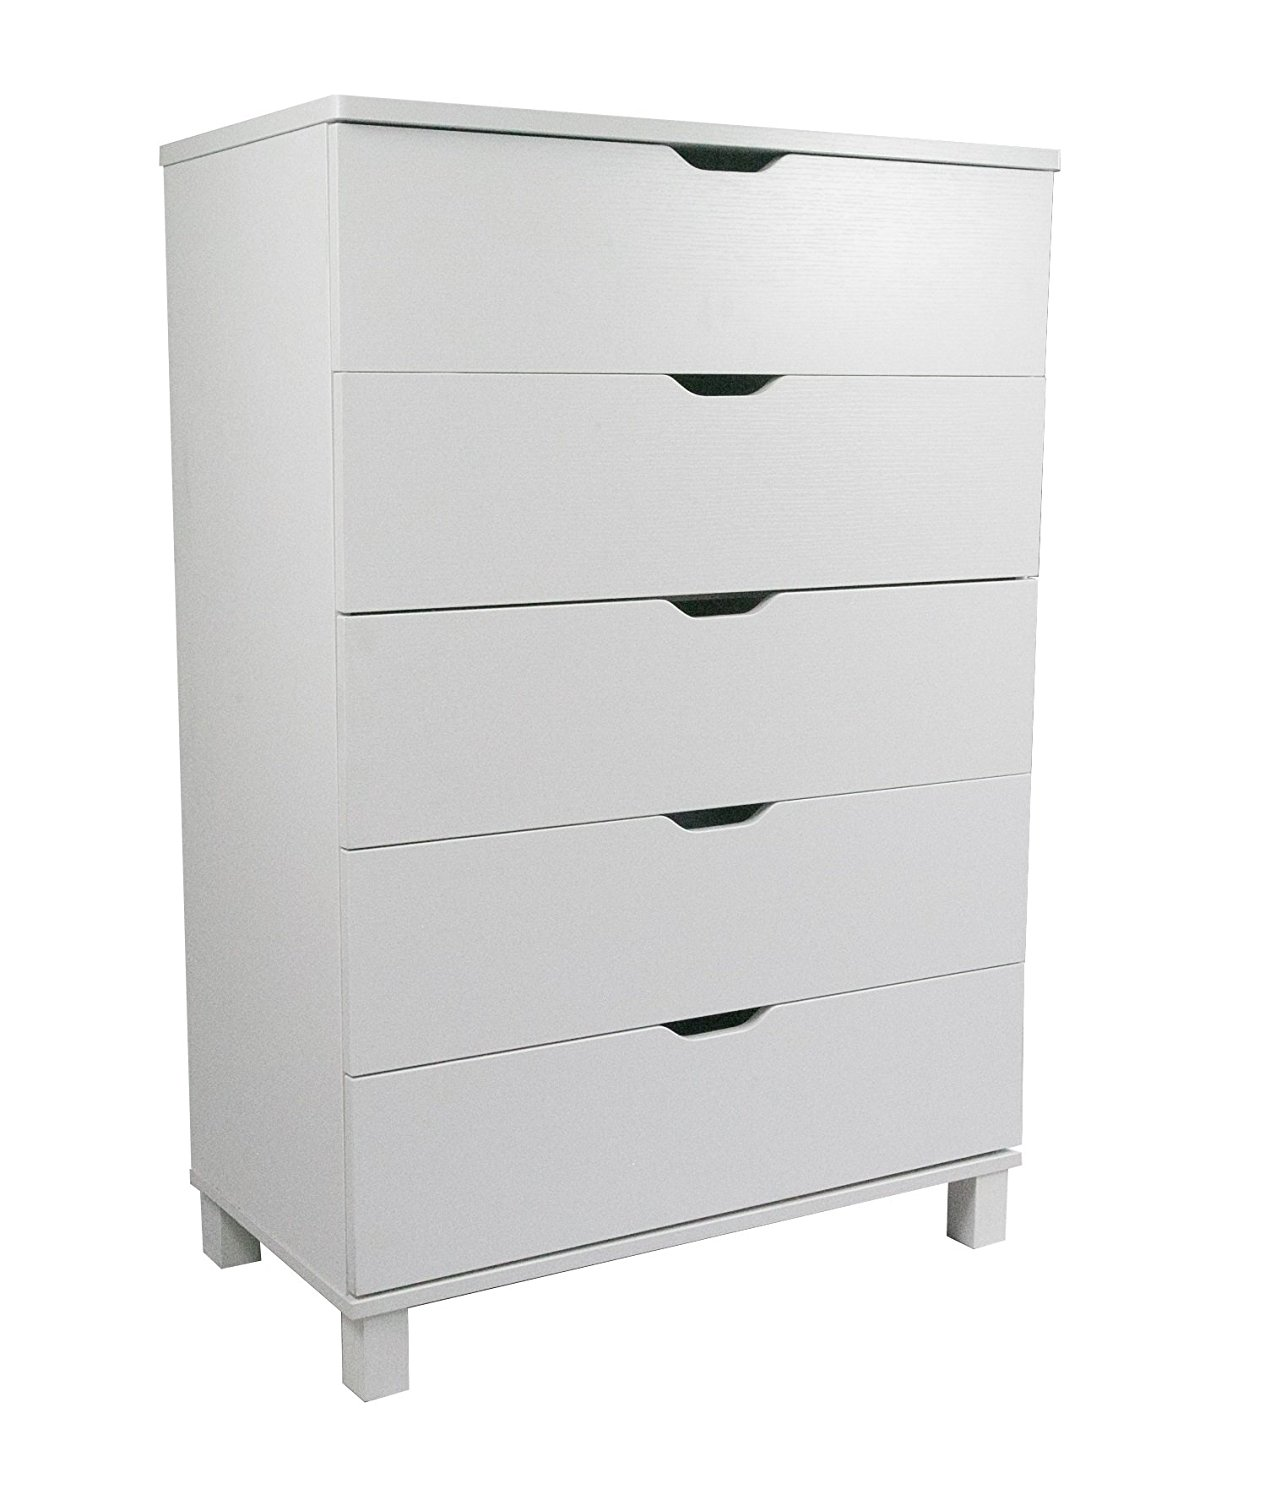 Y1106 Smart Home Attwell Modern Bedroom Furniture (One Size, White 5 Drawer Chest)